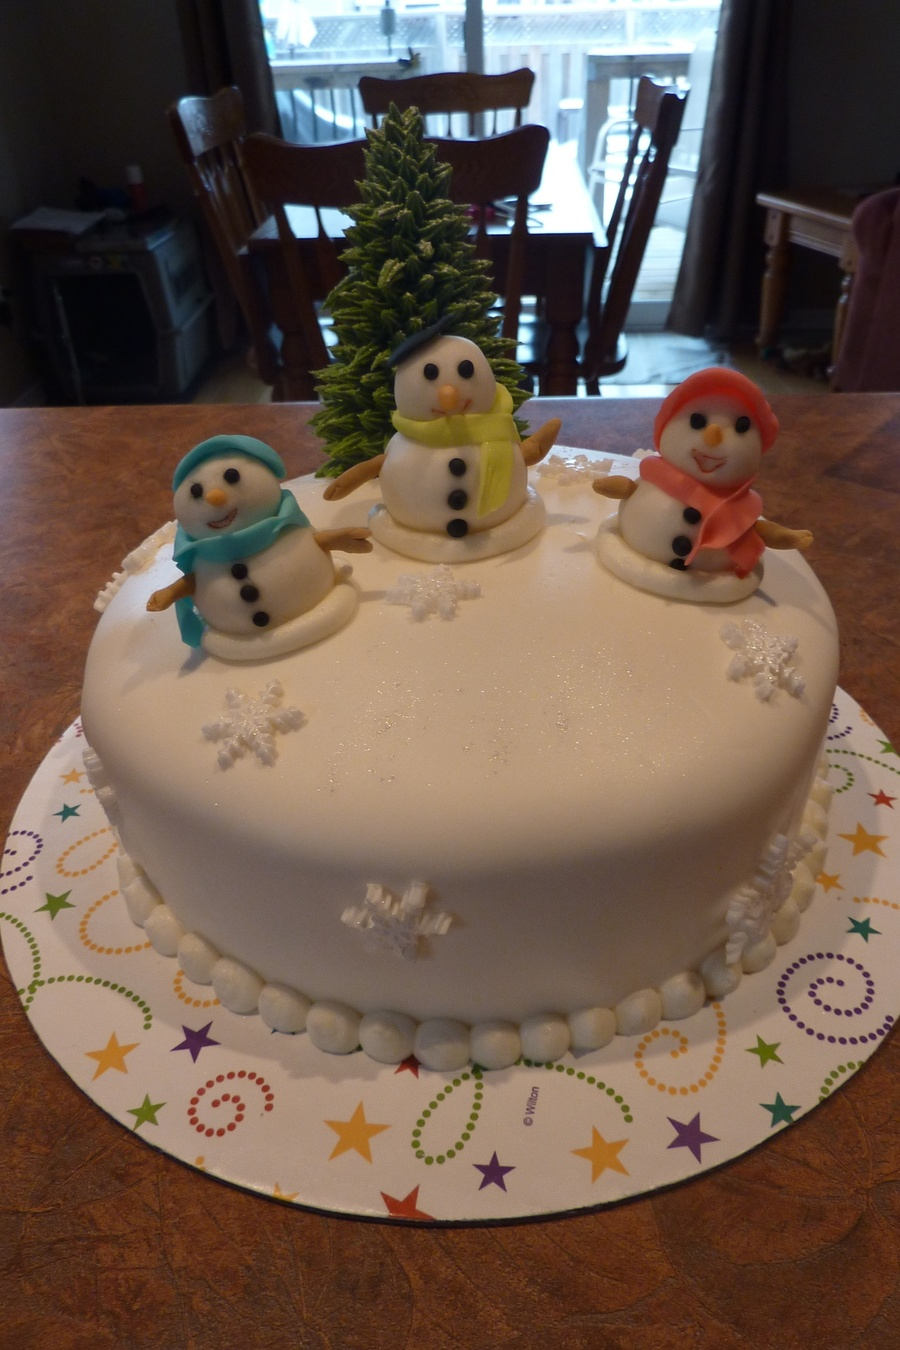 Christmas 2012 Snowmen Are One Of My Favorites on Cake Central